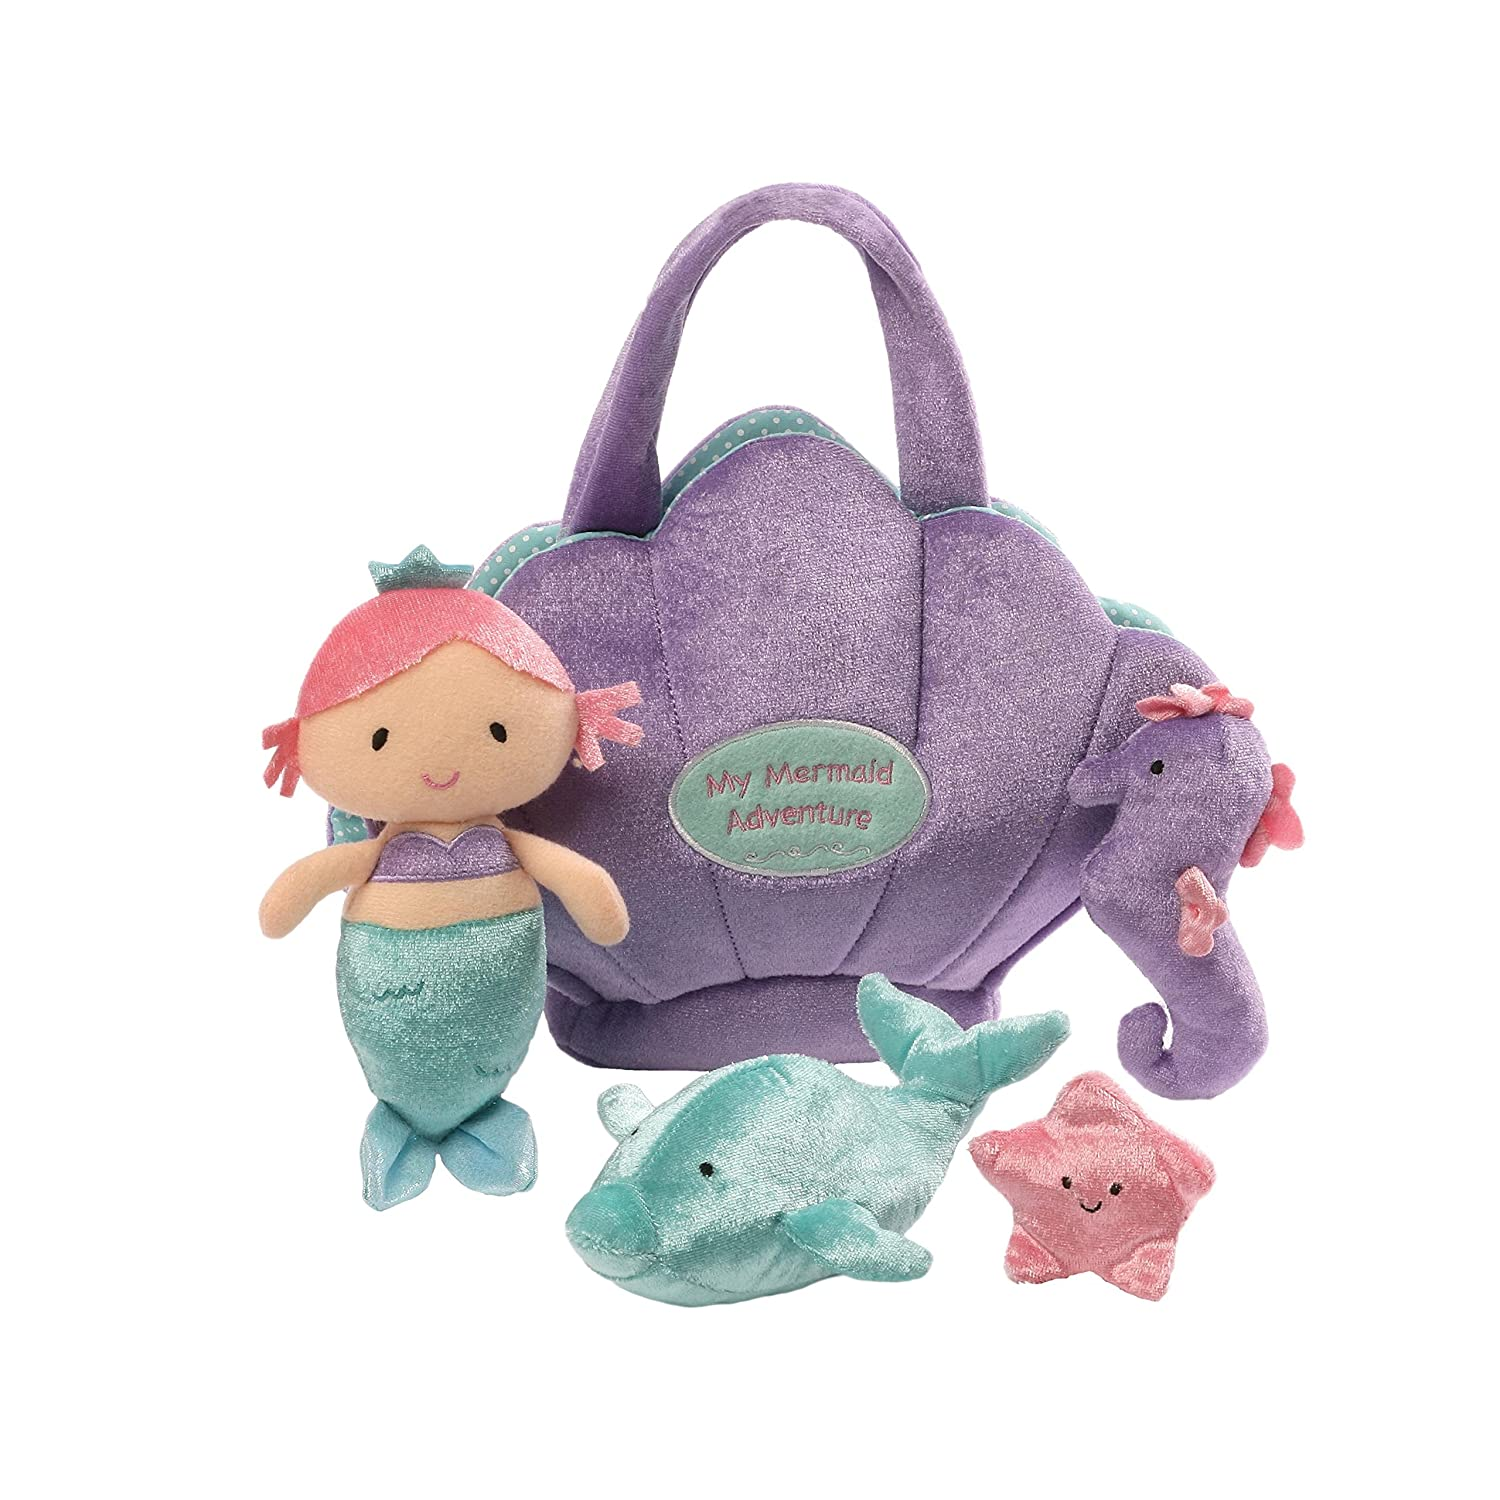 GUND Mermaid Adventure Playset